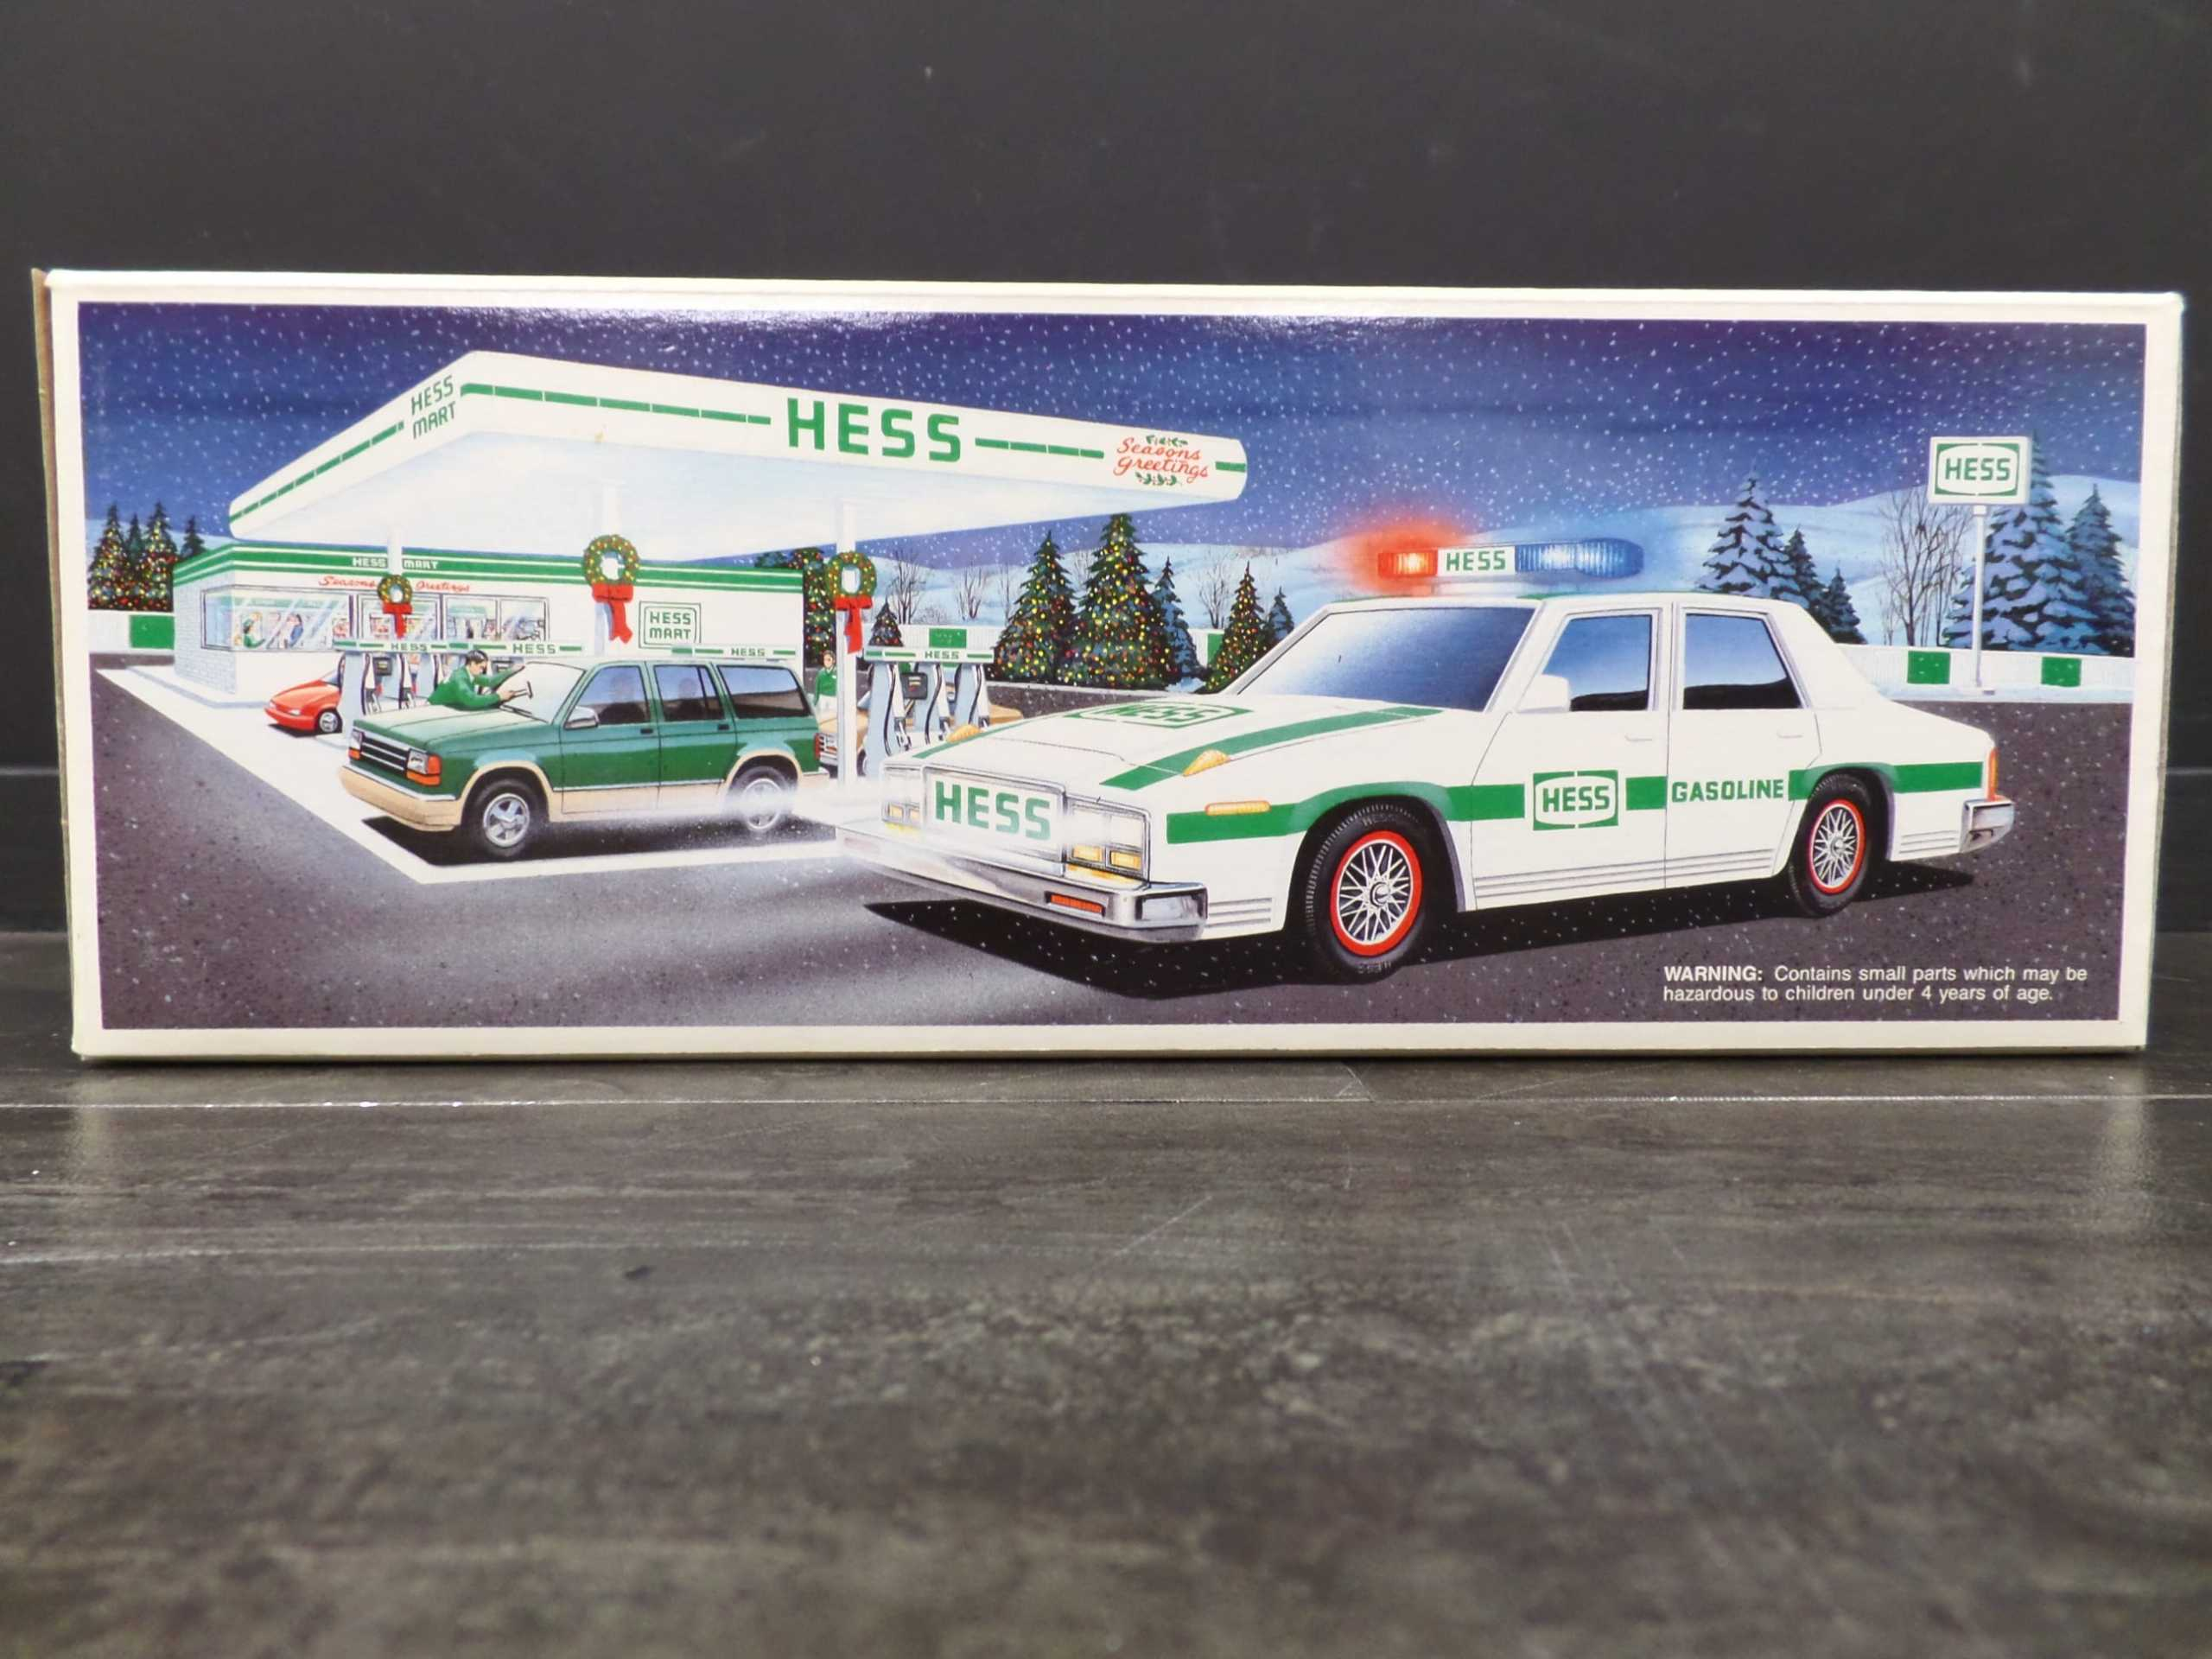 1993 HESS PATROL CAR <br/> Donated by: WPBS SUPPORTER <br/> Buy It Now: $35